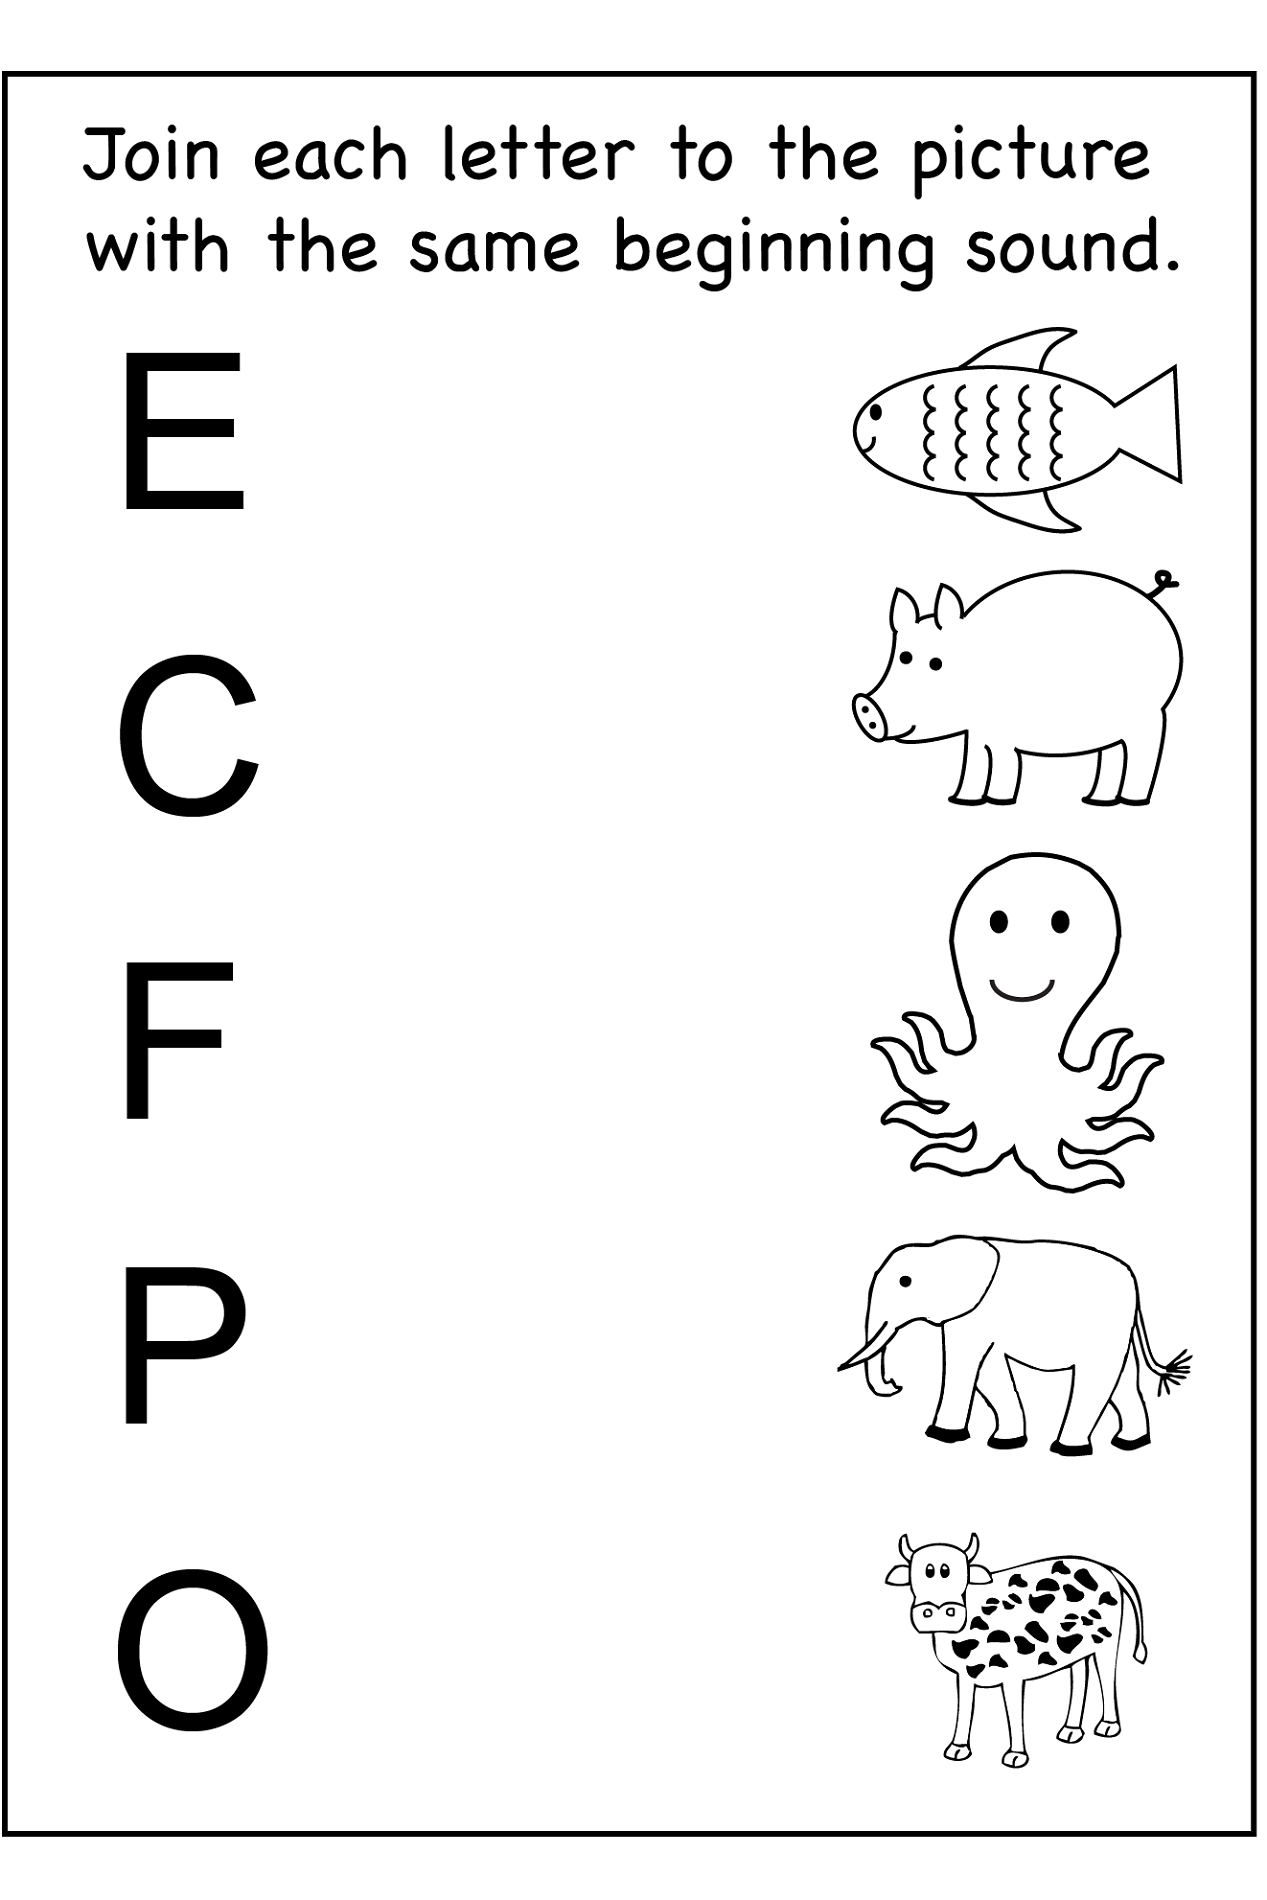 Fun Free Printable Worksheets